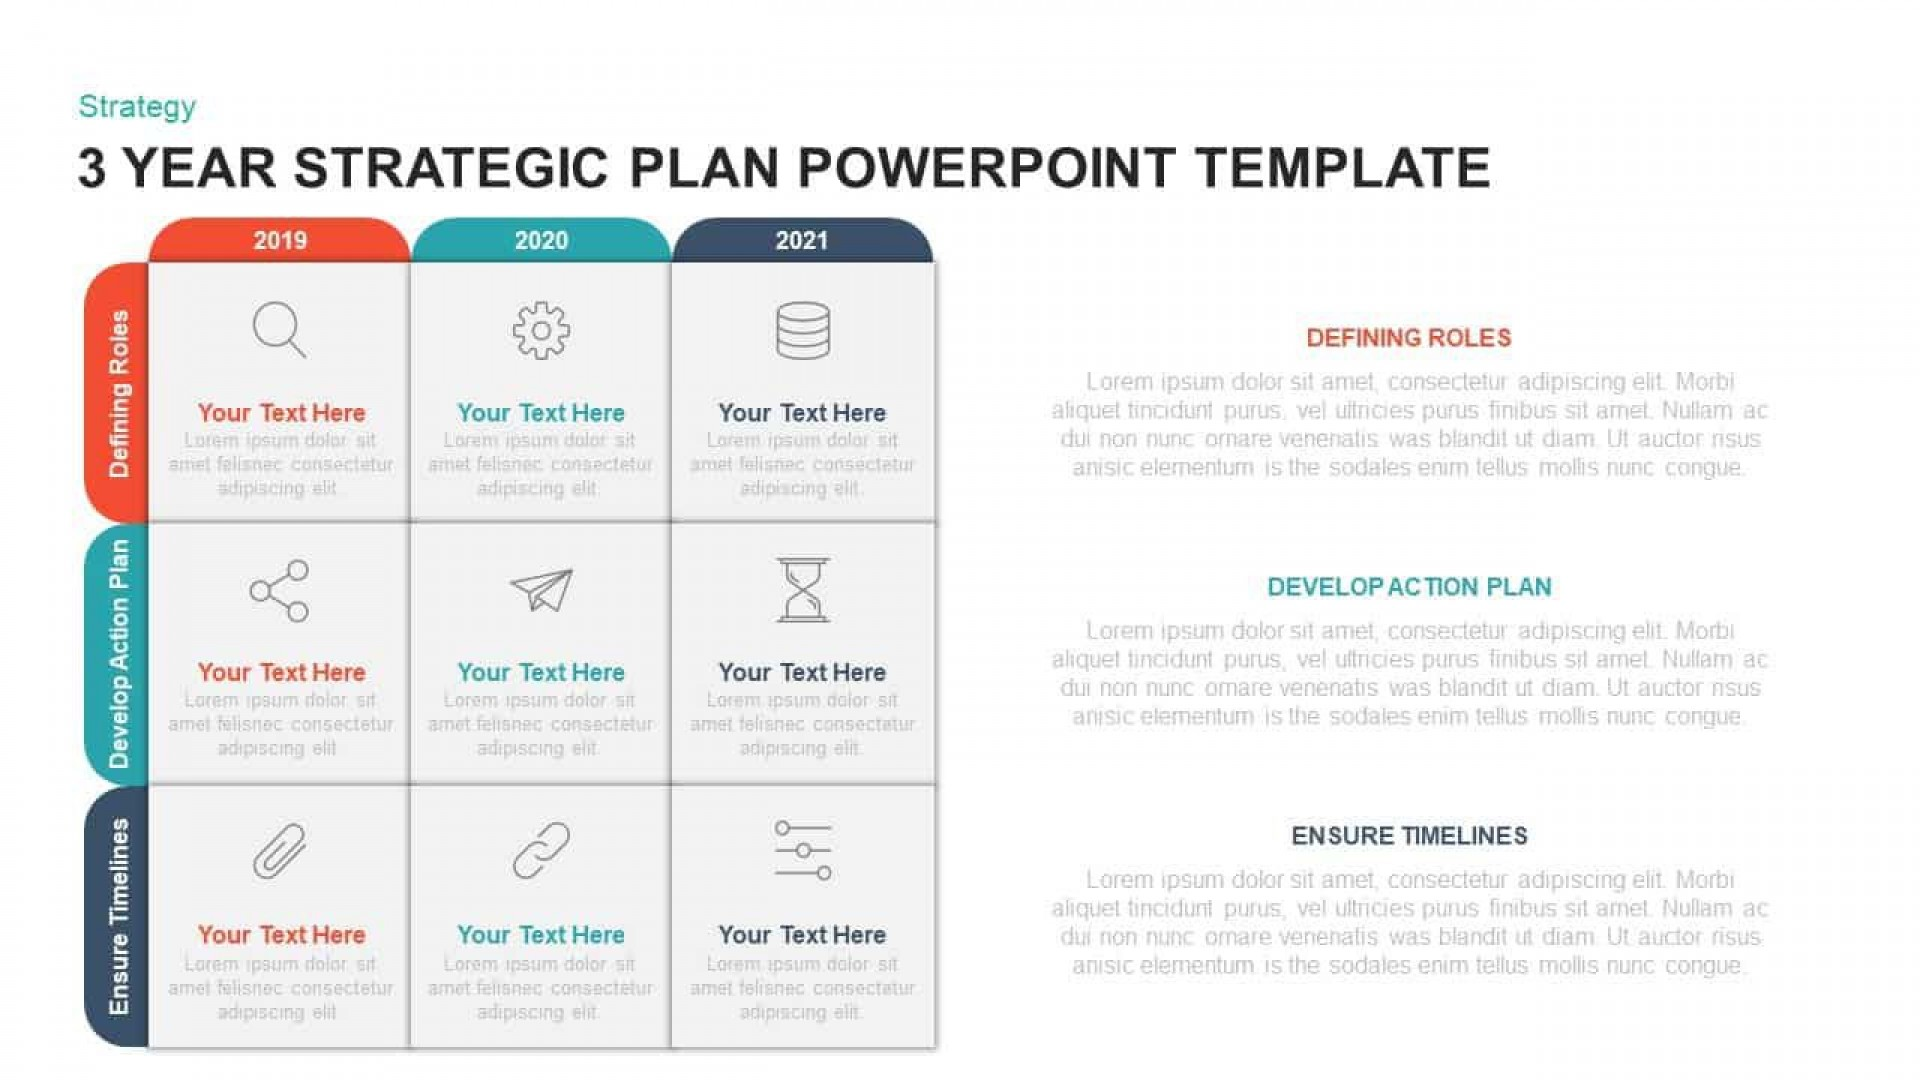 009 Excellent Strategic Planning Ppt Template Free Concept  5 Year Plan One Page Account1920